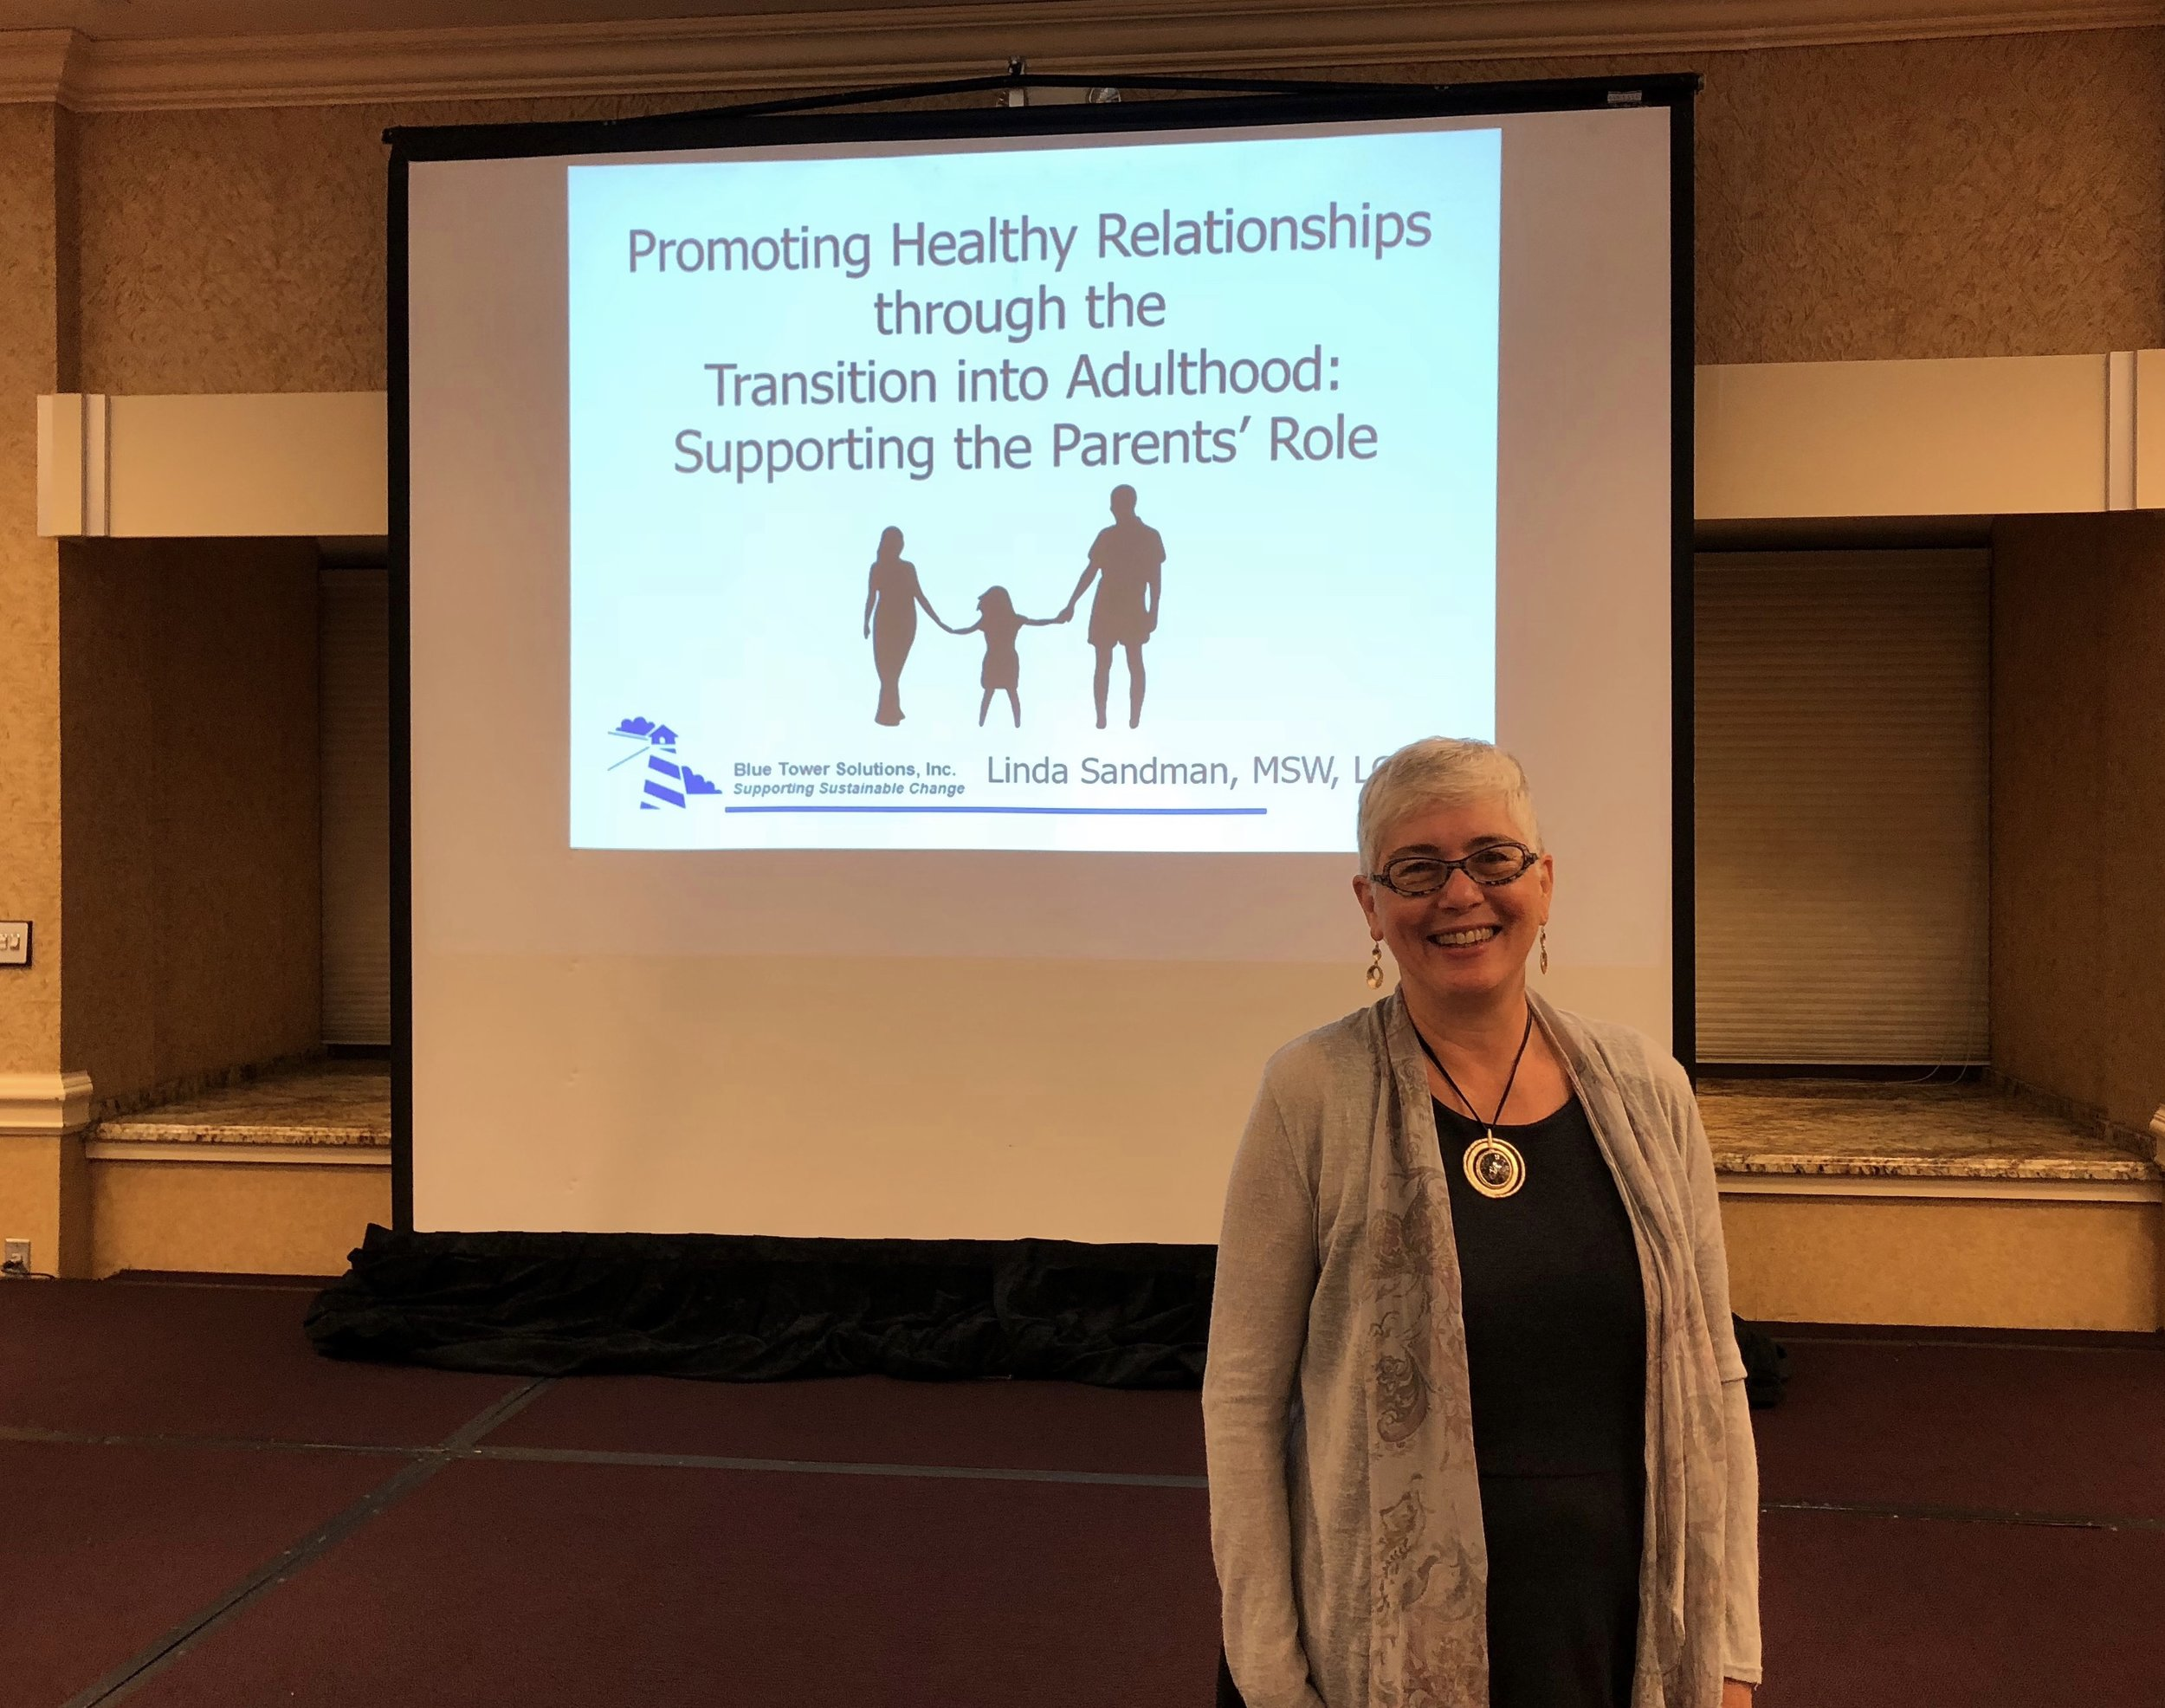 """Arc of Illinois Living with Autism Conference - October 2, 2018  Linda Sandman, Co-Director at Blue Tower Solutions, Inc. spoke at the Arc of Illinois Living with Autism Conference this week (October 2nd). Her topic was """"Promoting Healthy Relationships Through the Transition into Adulthood: Supporting the Parents' Role"""". Linda says, """"It was a welcoming and inspiring conference! Many thanks to the Arc of Illinois and The Autism Program (TAP) for sponsoring it.""""  While at the Conference, Linda learned about several impressive self-advocates with autism. One is named Jeremy Sicile-Kira. His mother, Chantal Sicile-Kira spoke at the conference and shared about Jeremy's journey to becoming a successful artist. Jeremy has synesthesia and is able to translate the emotions of people he has met into incredible portraits. It is definitely worth your time to check out his website:  https://www.jeremysvision.com/   The second self-advocate, Kerry Magro, is an accomplished speaker with an amazing resume. He has undertaken a very cool project to assemble short videos by self-advocates around the world speaking about their passions and what makes them unique in the world. You can find these videos on the Facebook page:  https://www.facebook.com/ASpecialCommunity/"""